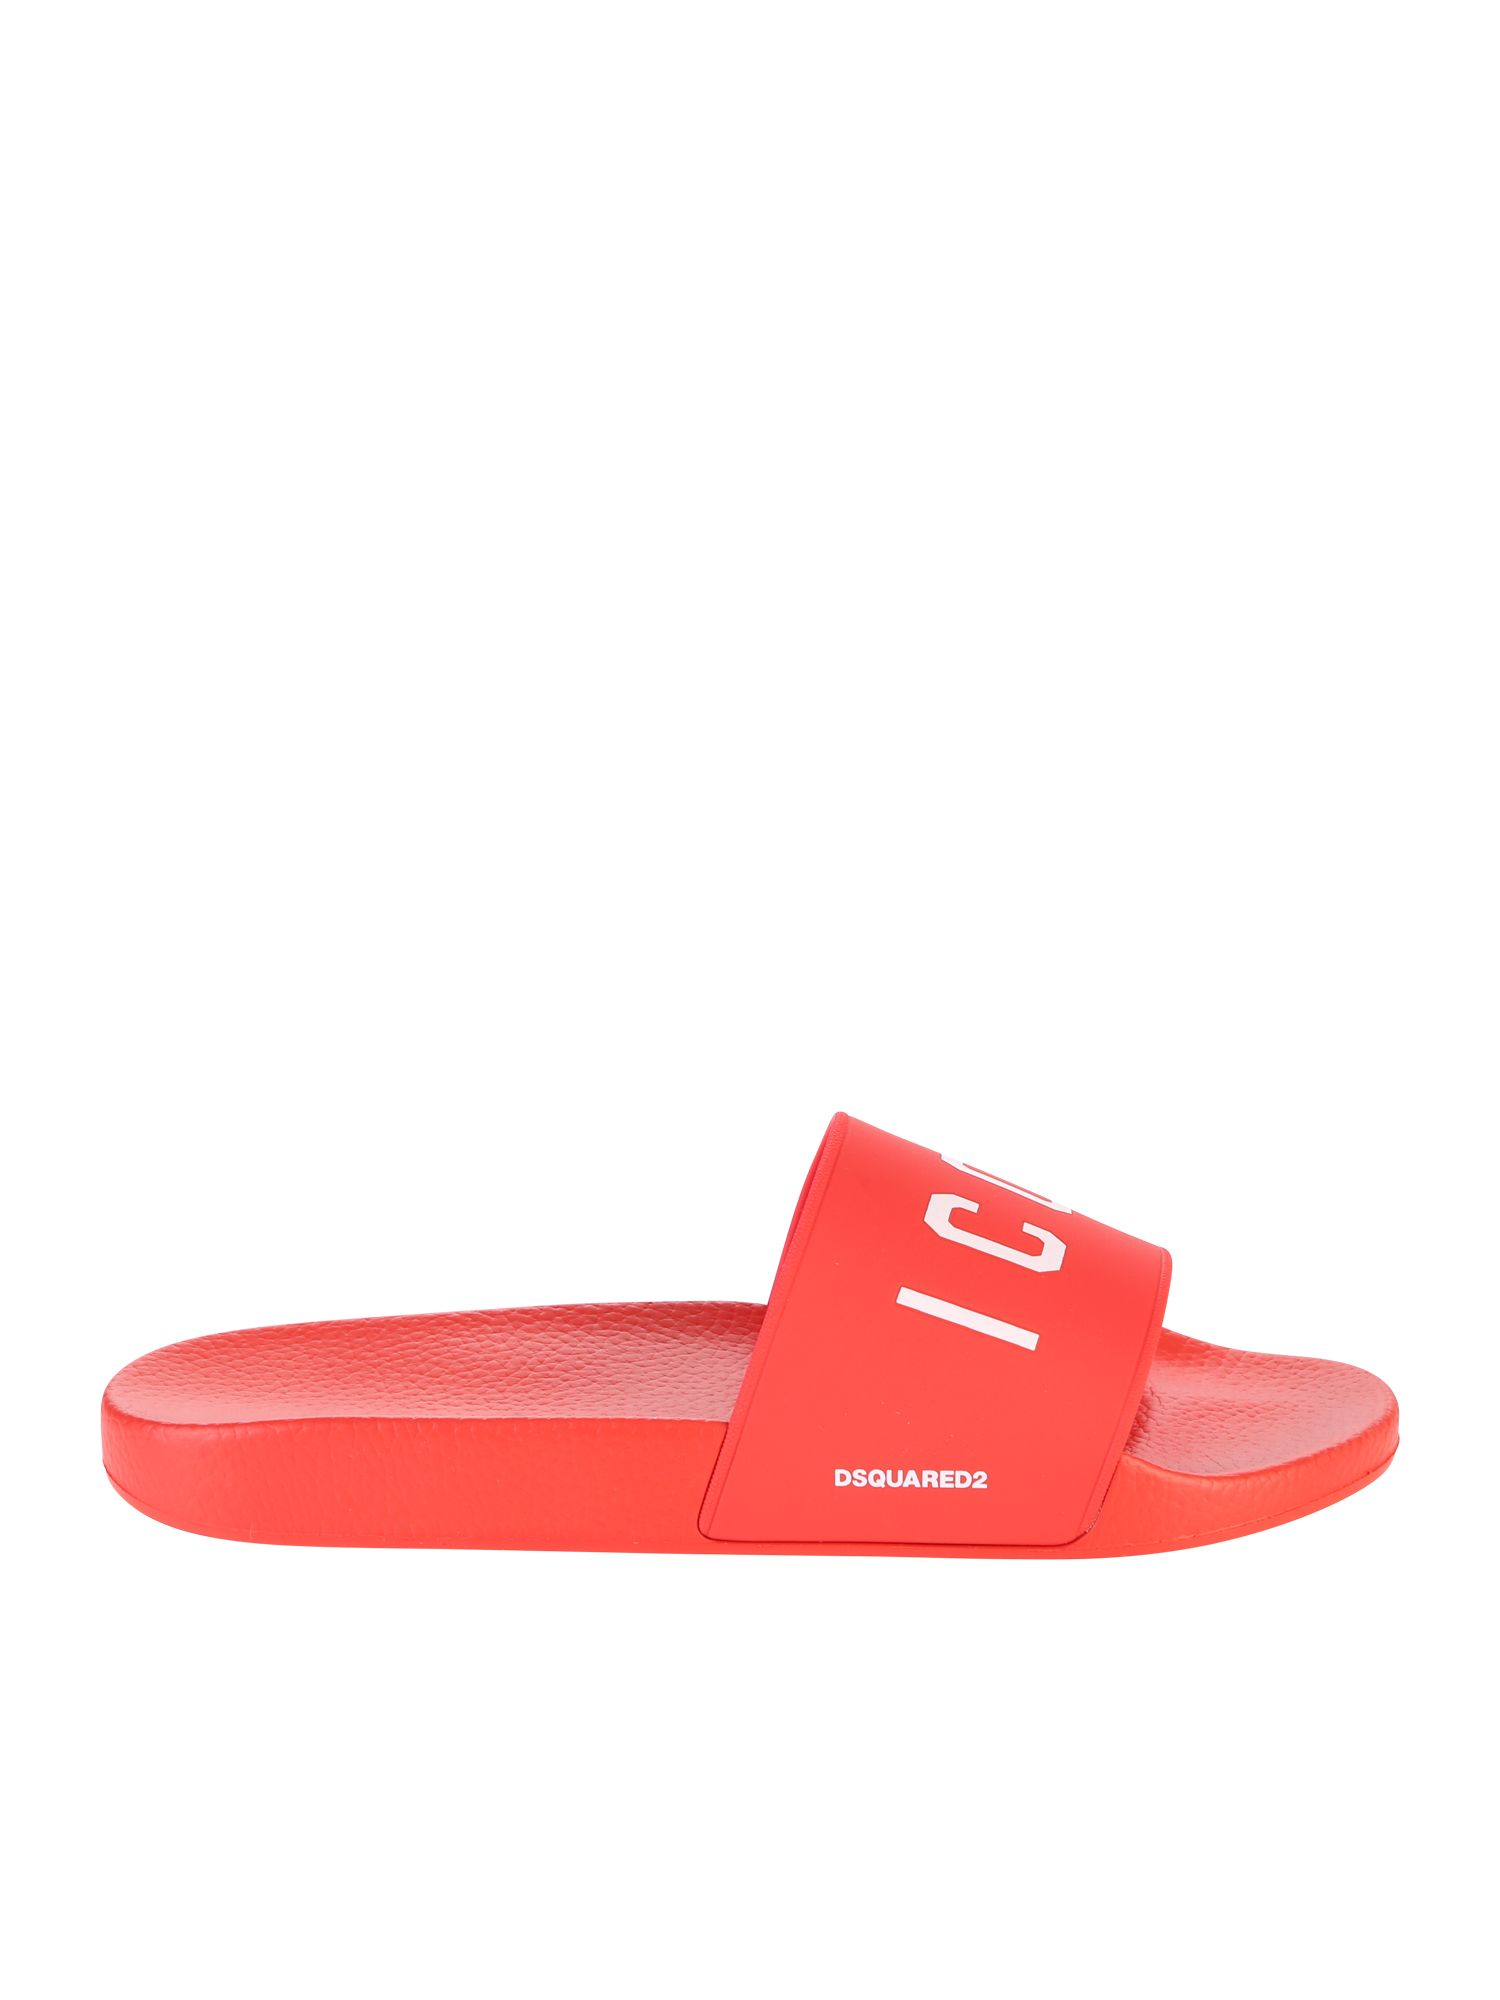 Dsquared2 Red Icon Slide Sandals